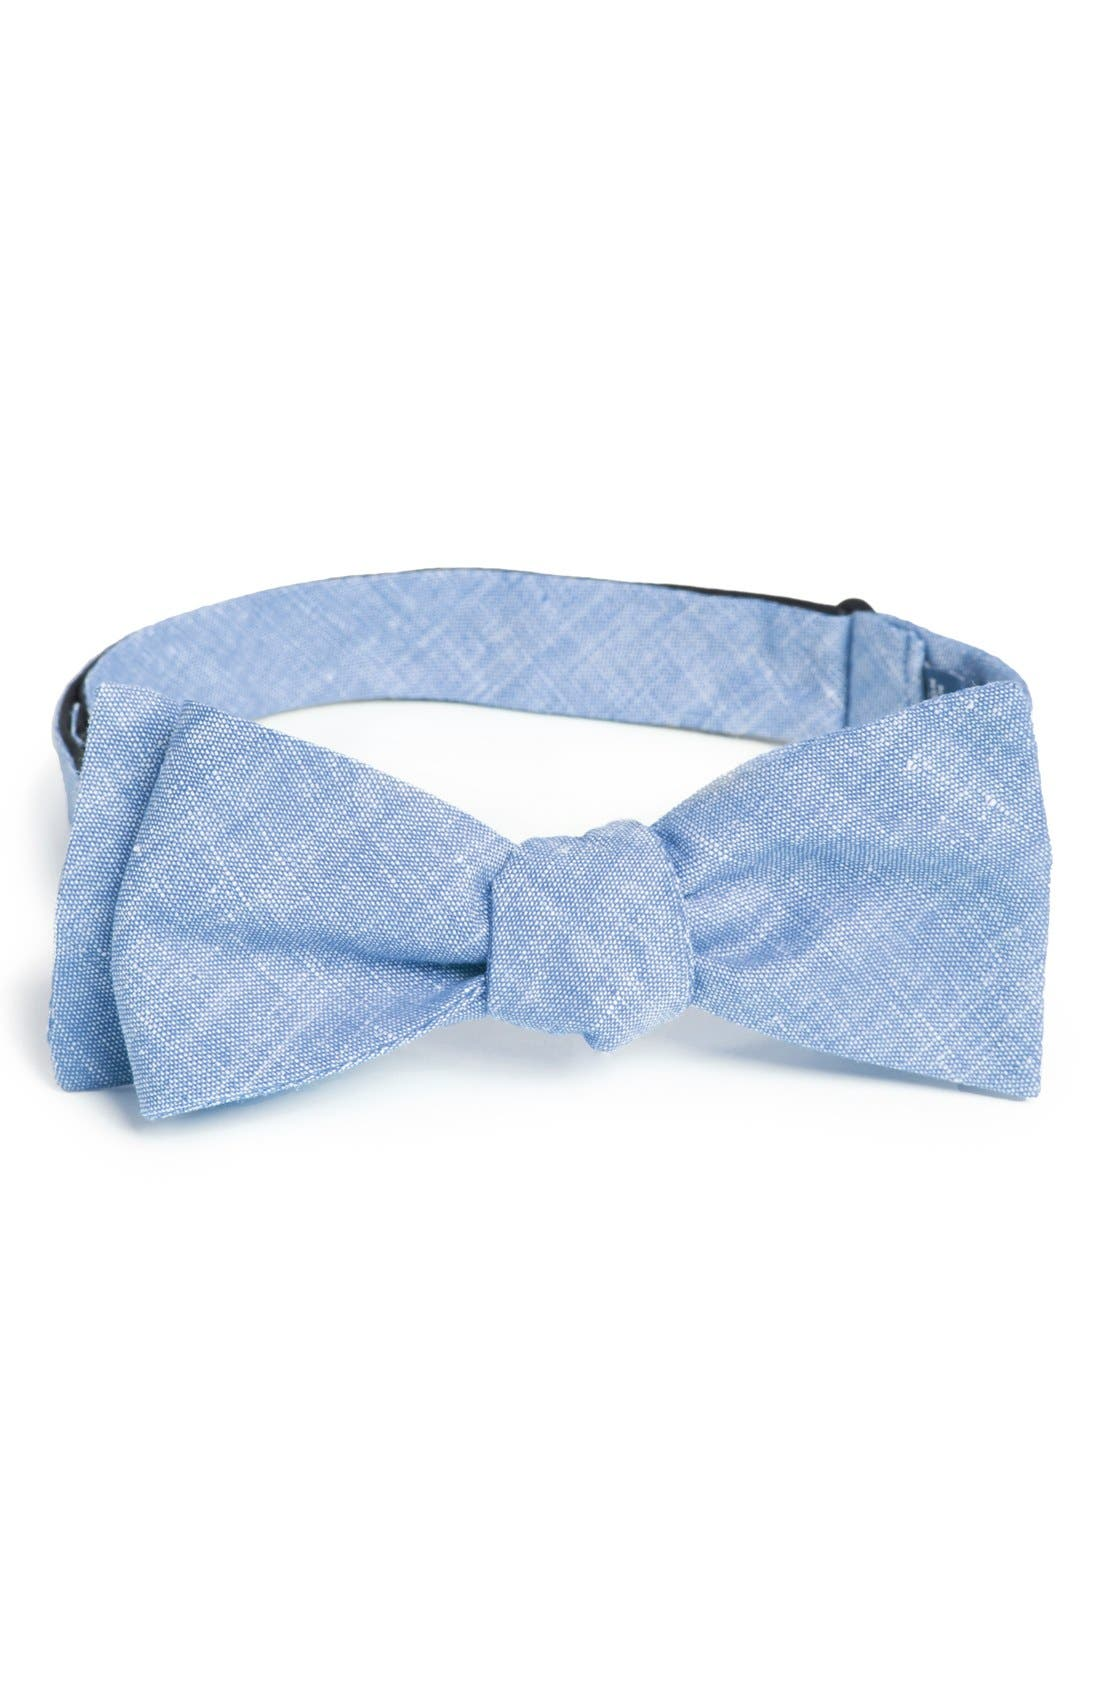 Alternate Image 1 Selected - Original Penguin Cotton Bow Tie